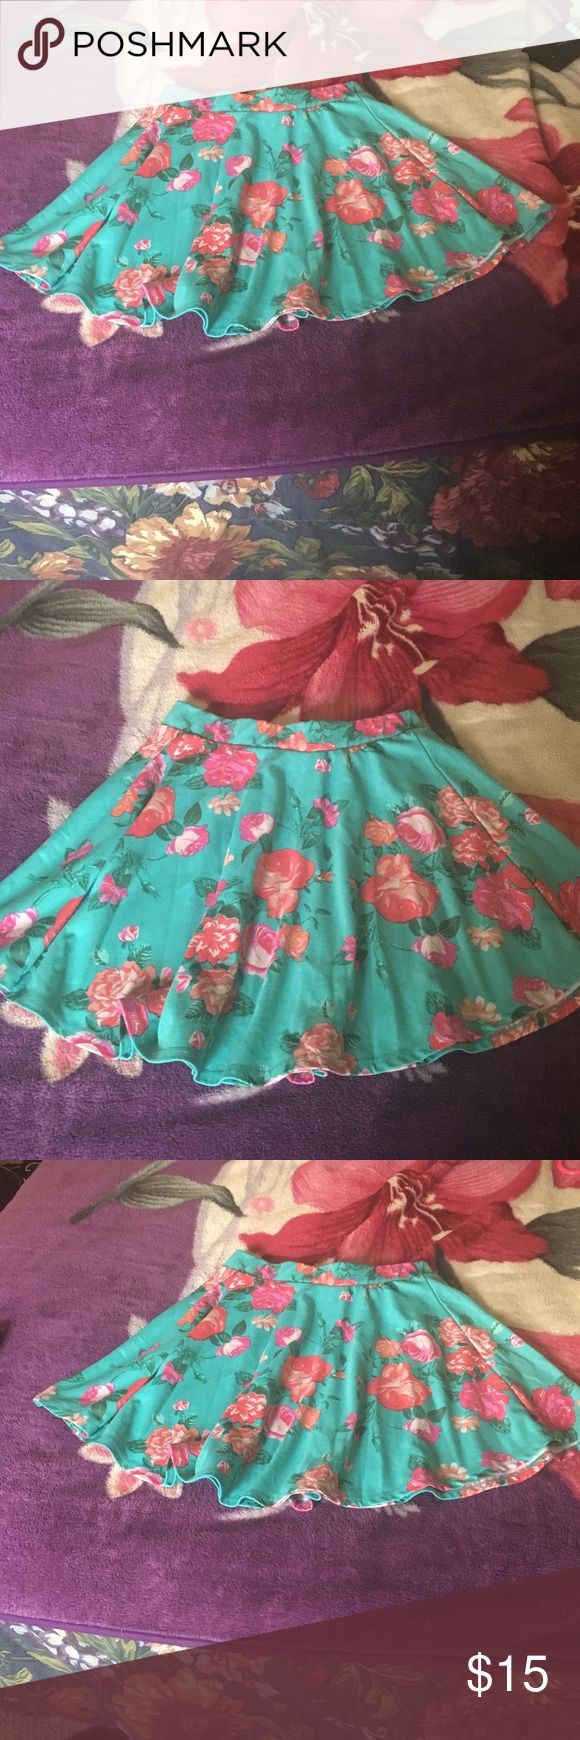 Skirt Foral mint green skirt very cute perfect for spring! Skirts Mini